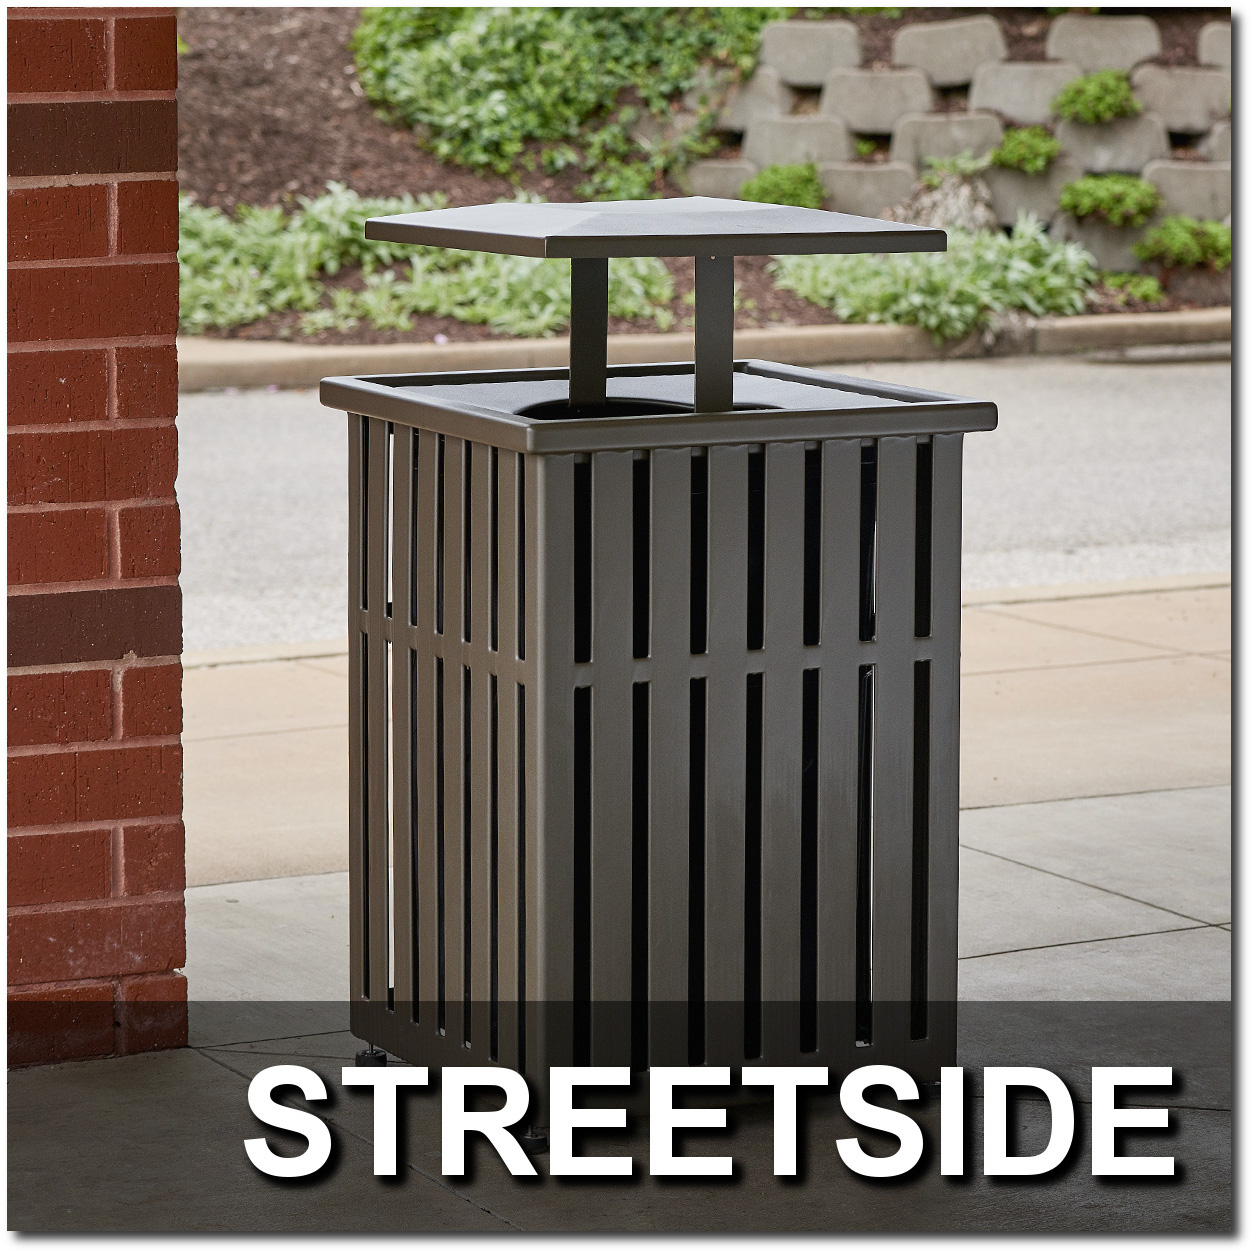 Streetside Collection Trash Receptacles